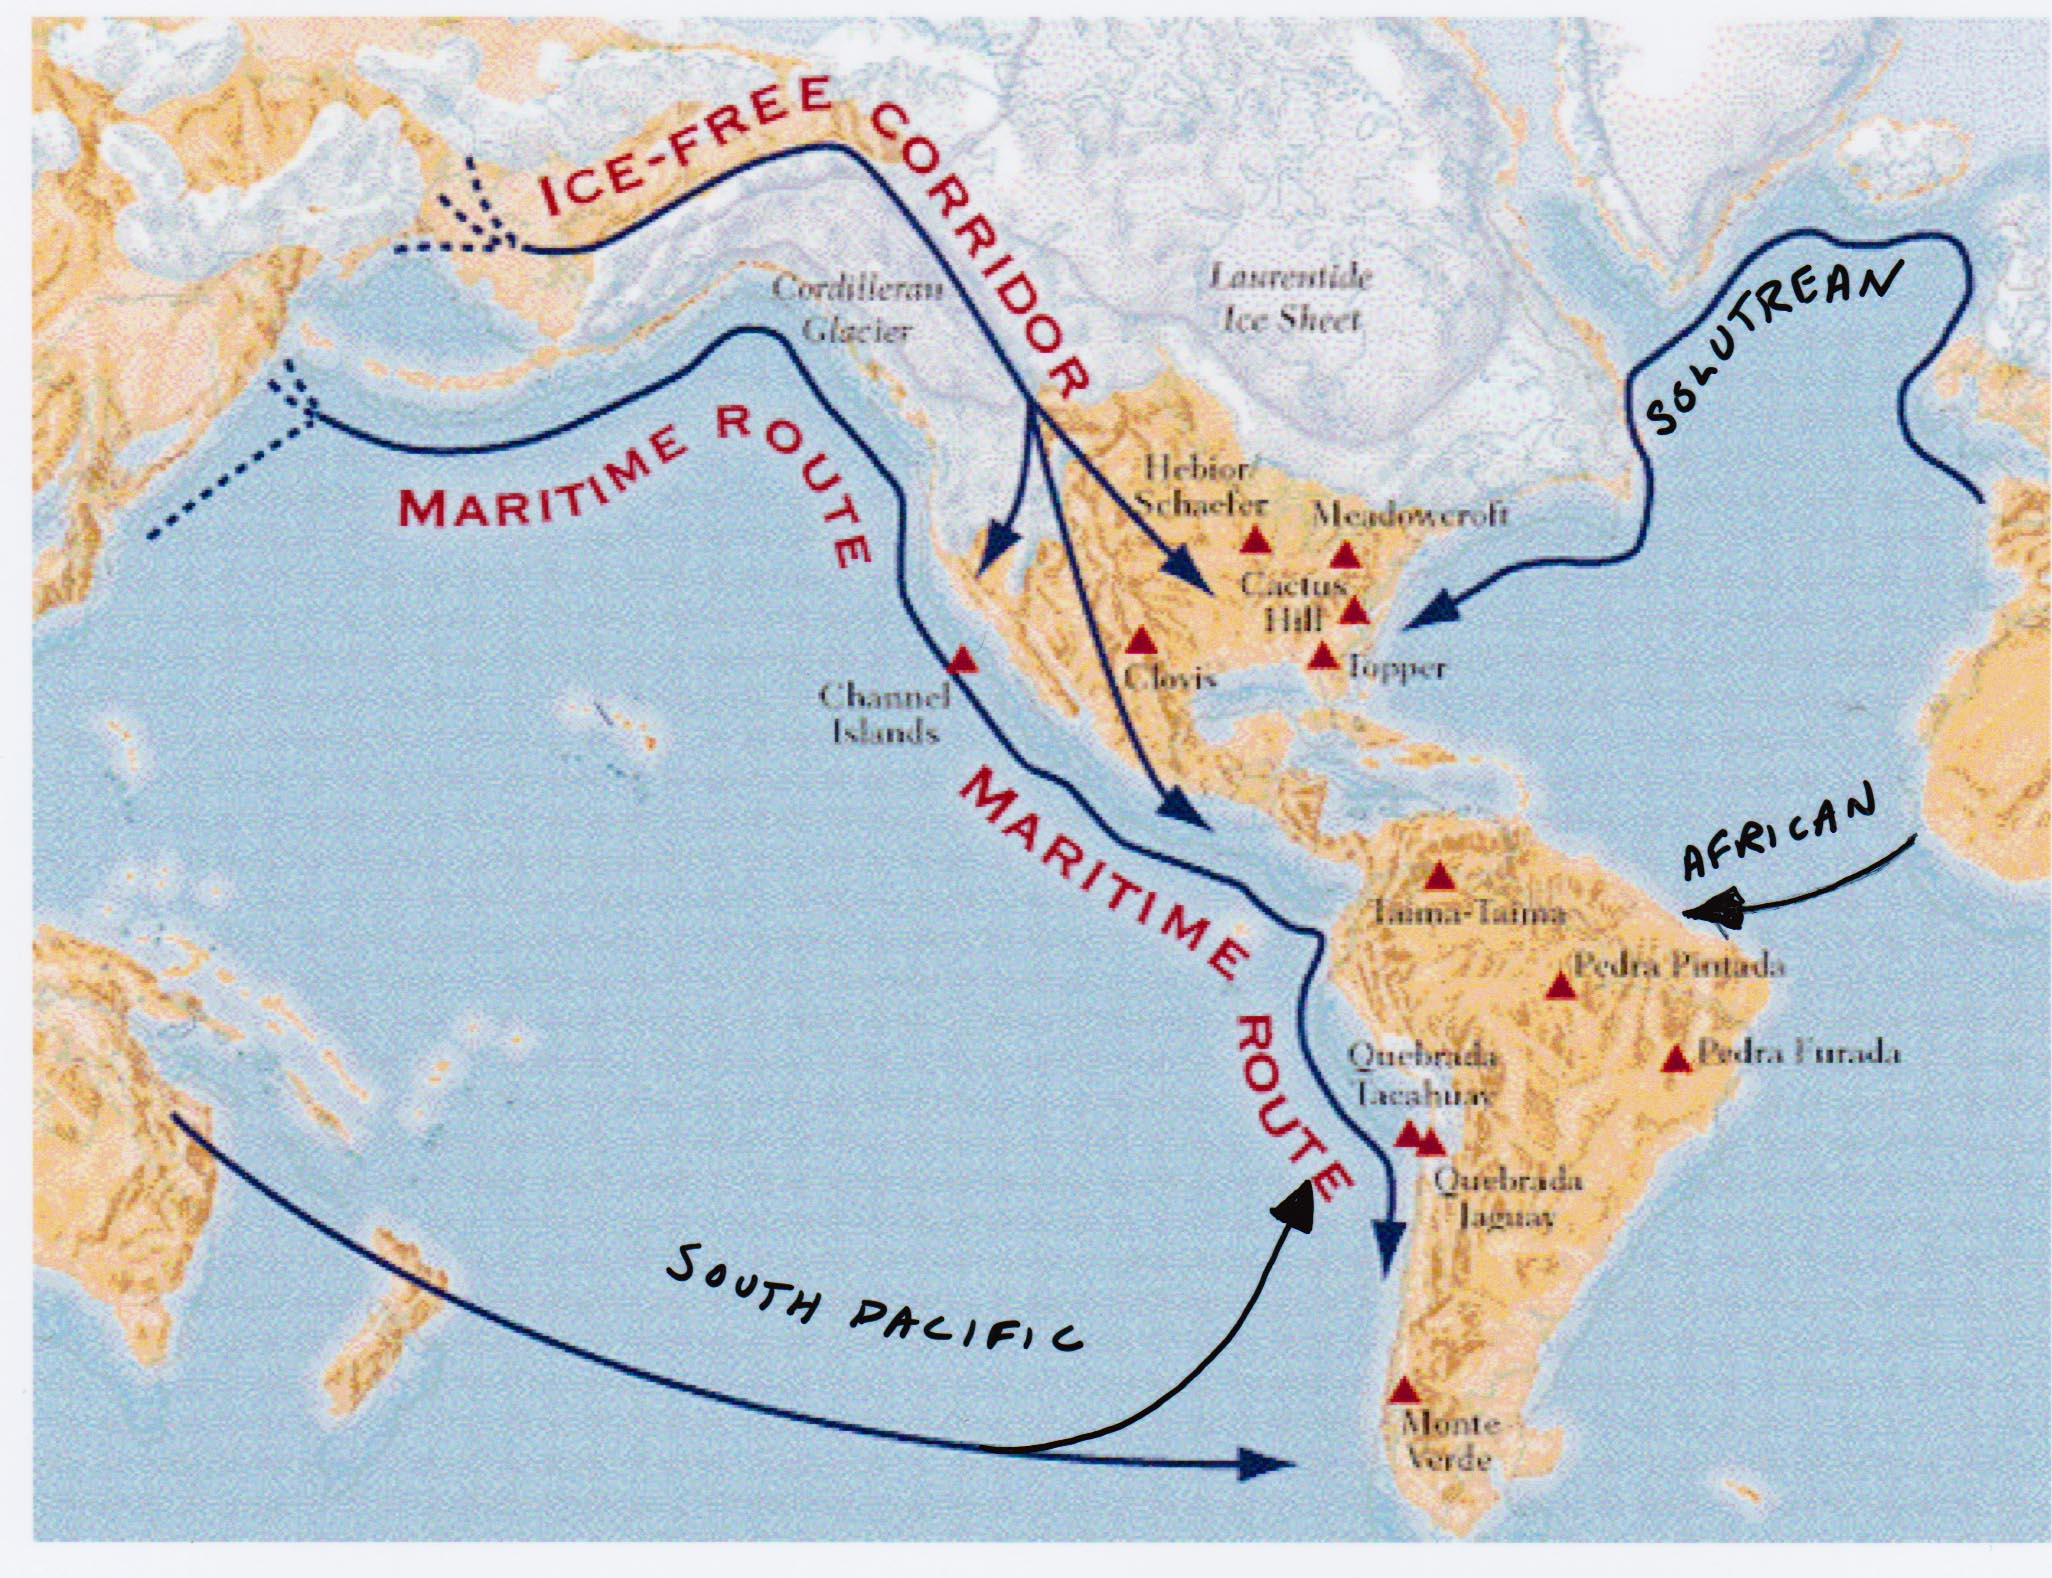 The theory of early migration to the americas